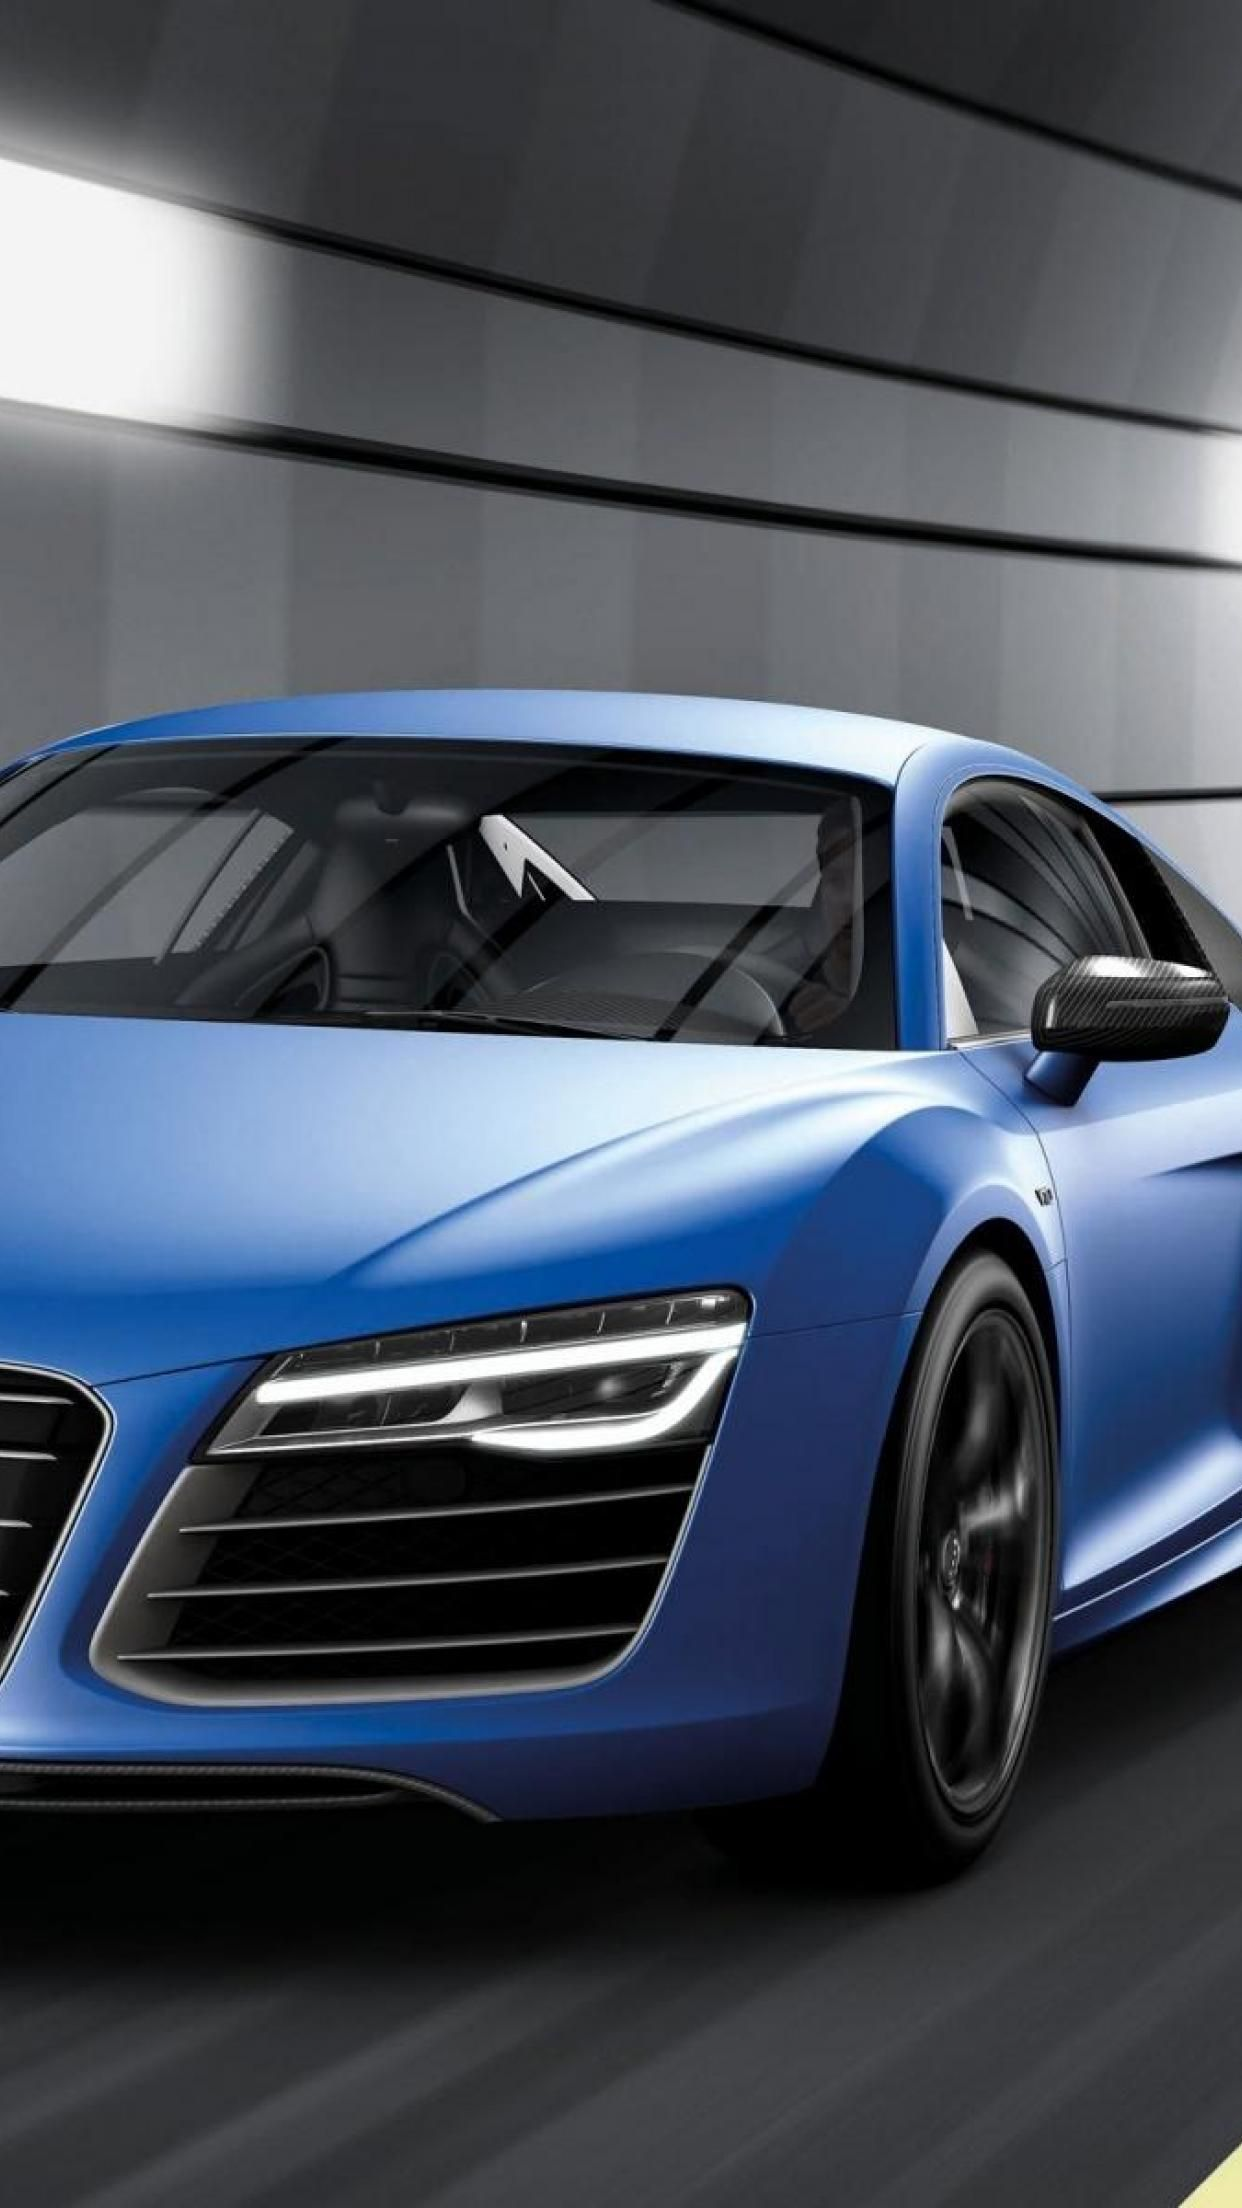 Audi HD Wallpapers 1080p - WallpaperSafari